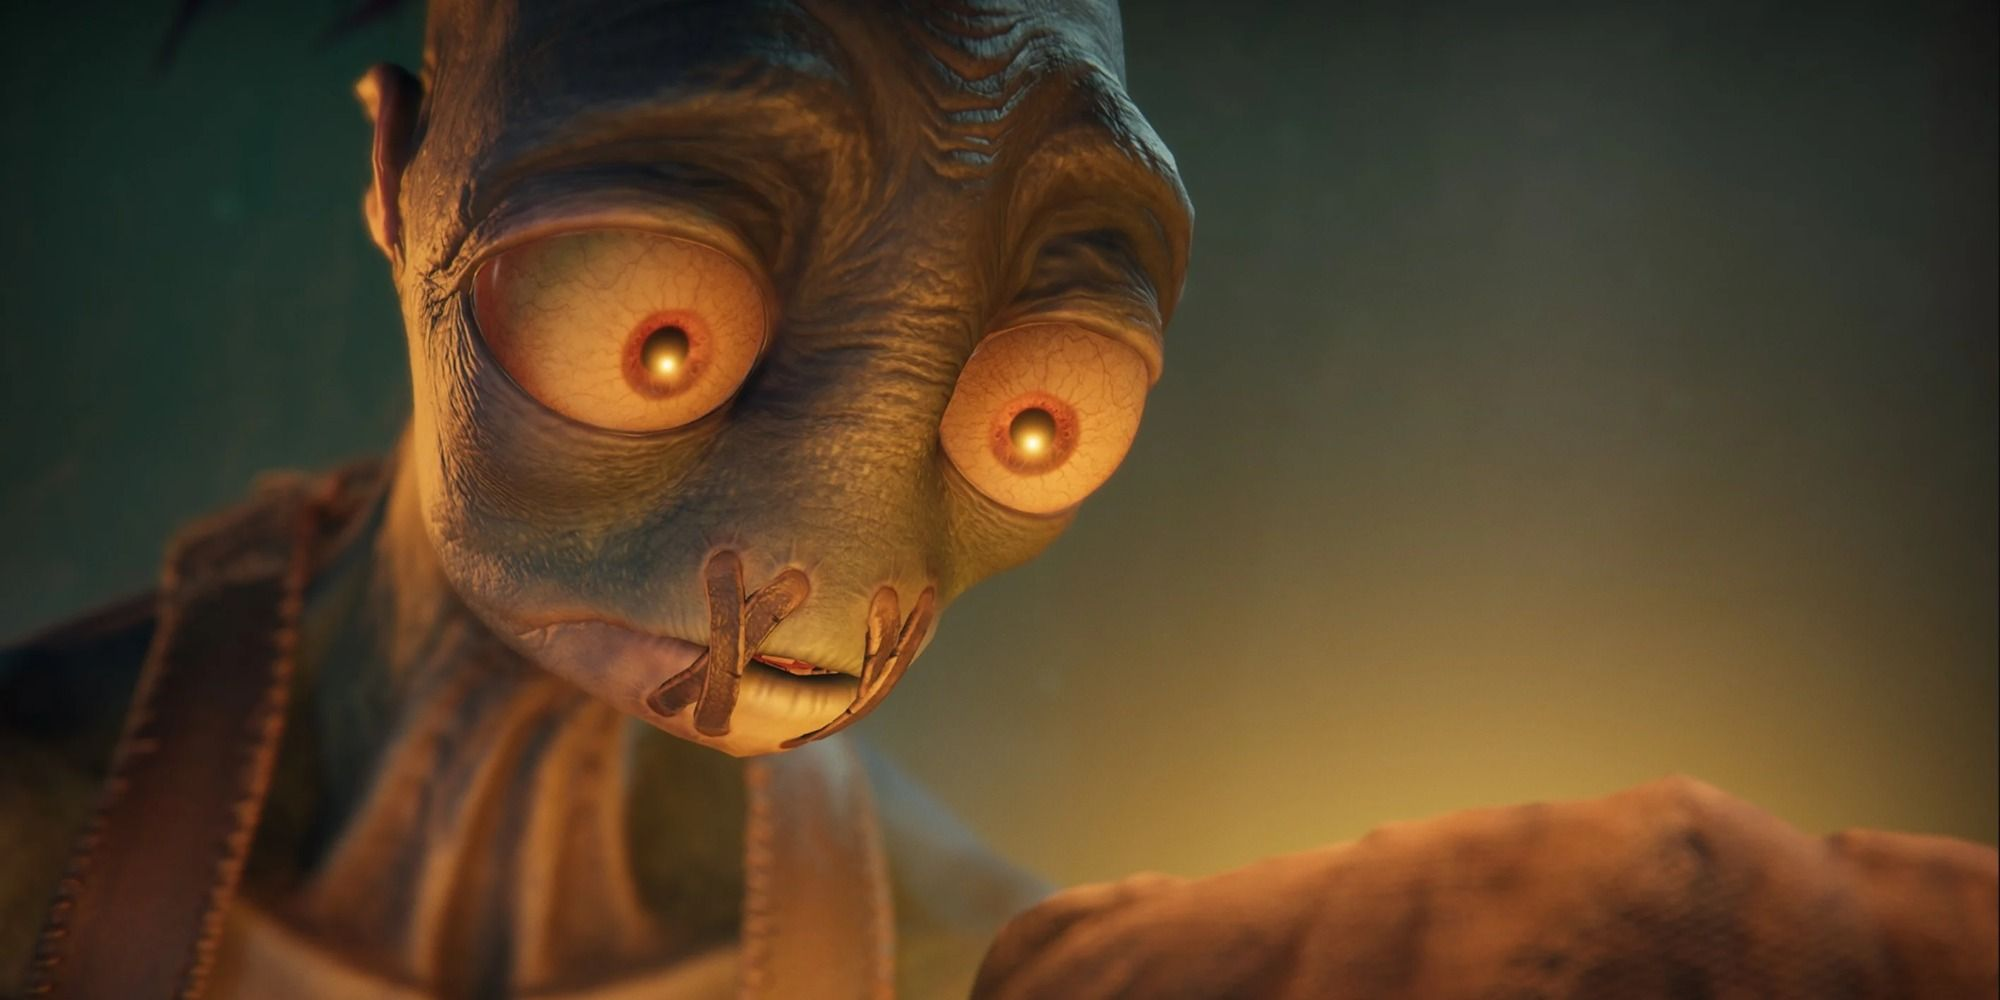 Oddworld Soulstorm Was Underwhelming, But I Can't Help But Admire It